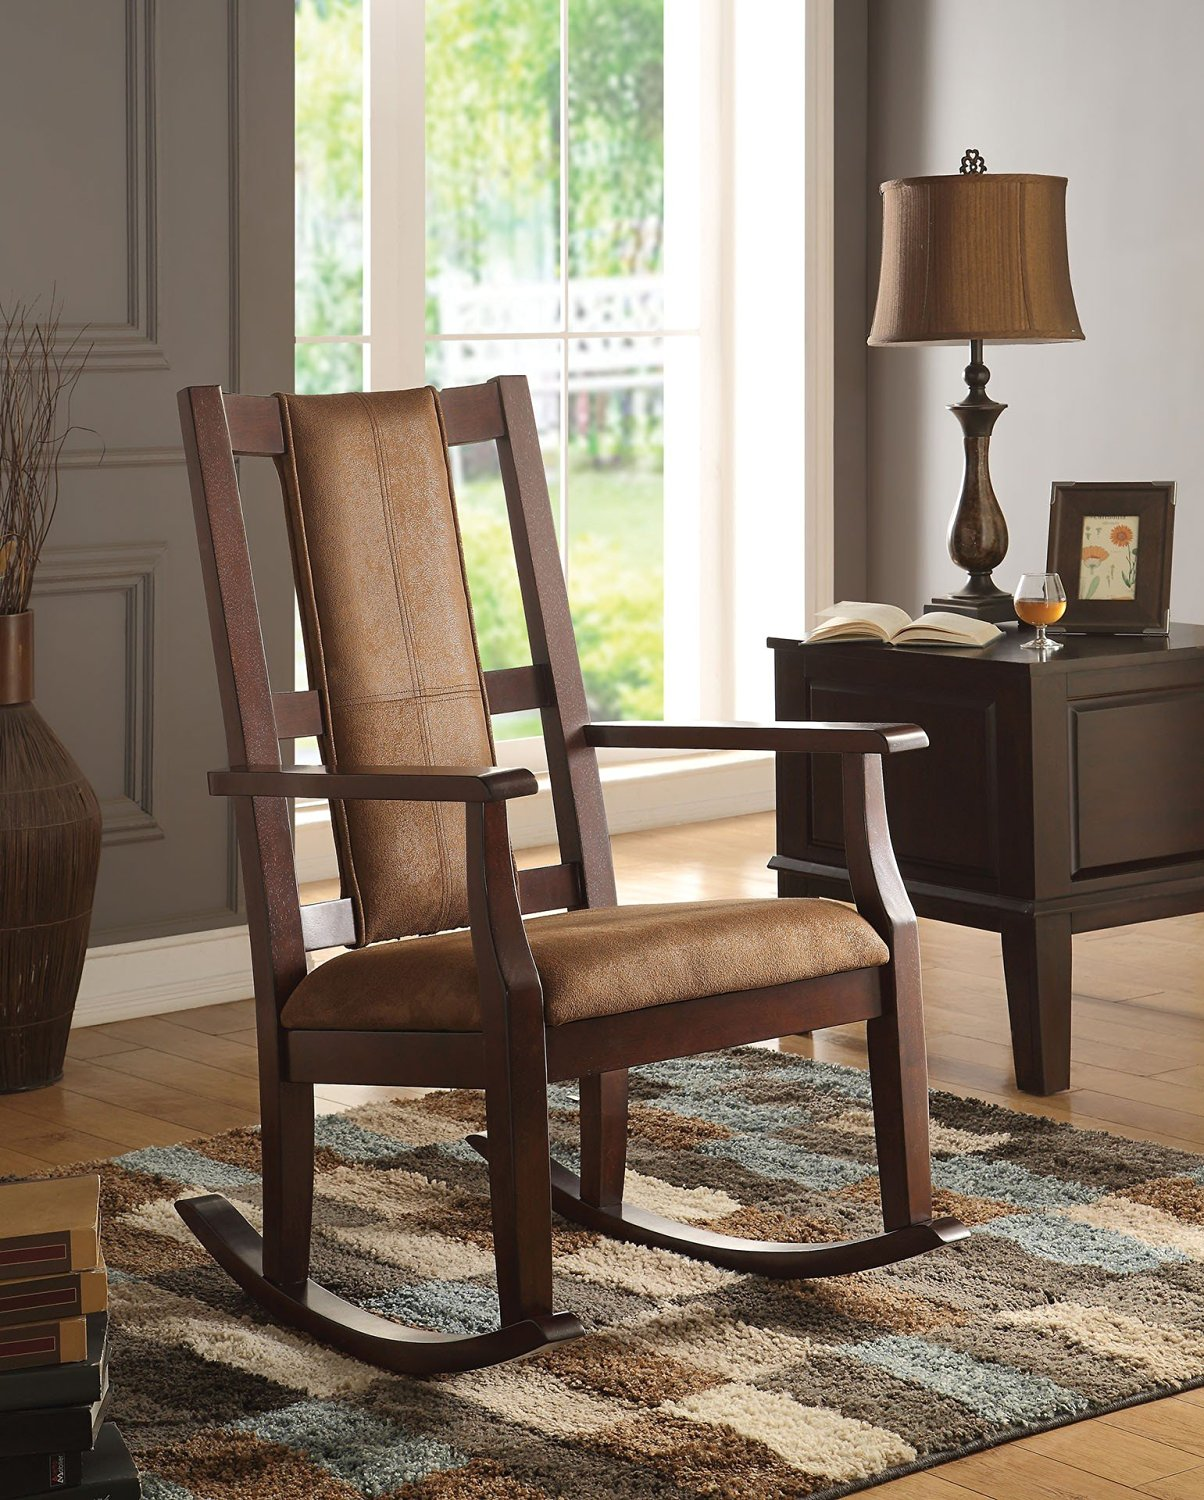 Get Quotations · 1PerfectChoice Butsea Brown Fabric Espresso Rocking Chair